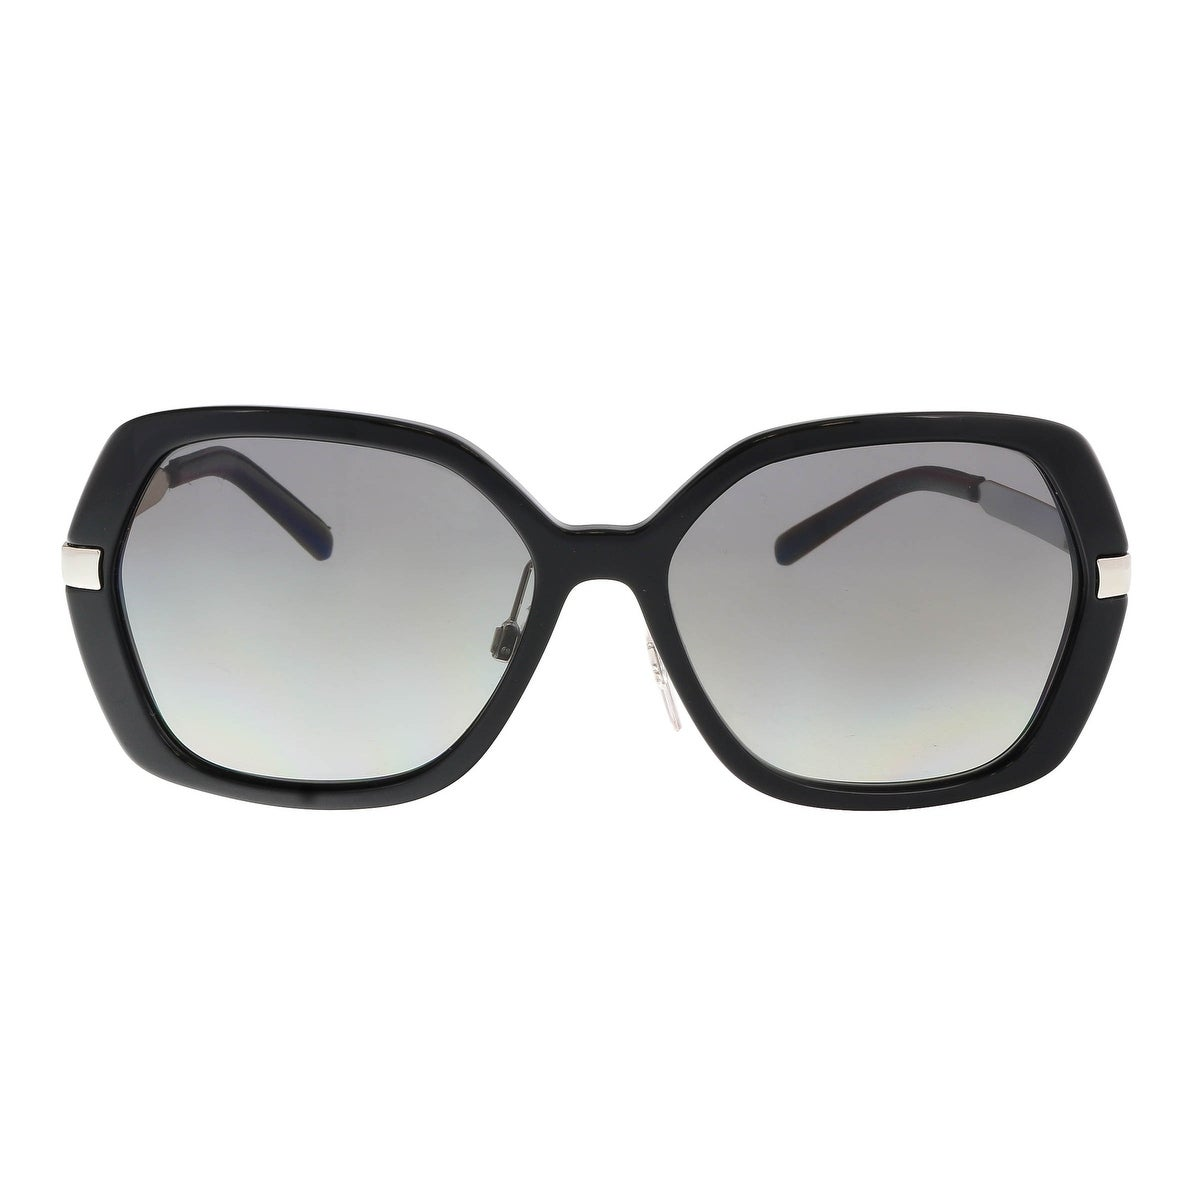 cbc498d00f0 Shop Burberry BE4153Q 300111 Black Square Sunglasses - 58-16-135 - Free  Shipping Today - Overstock - 19583428